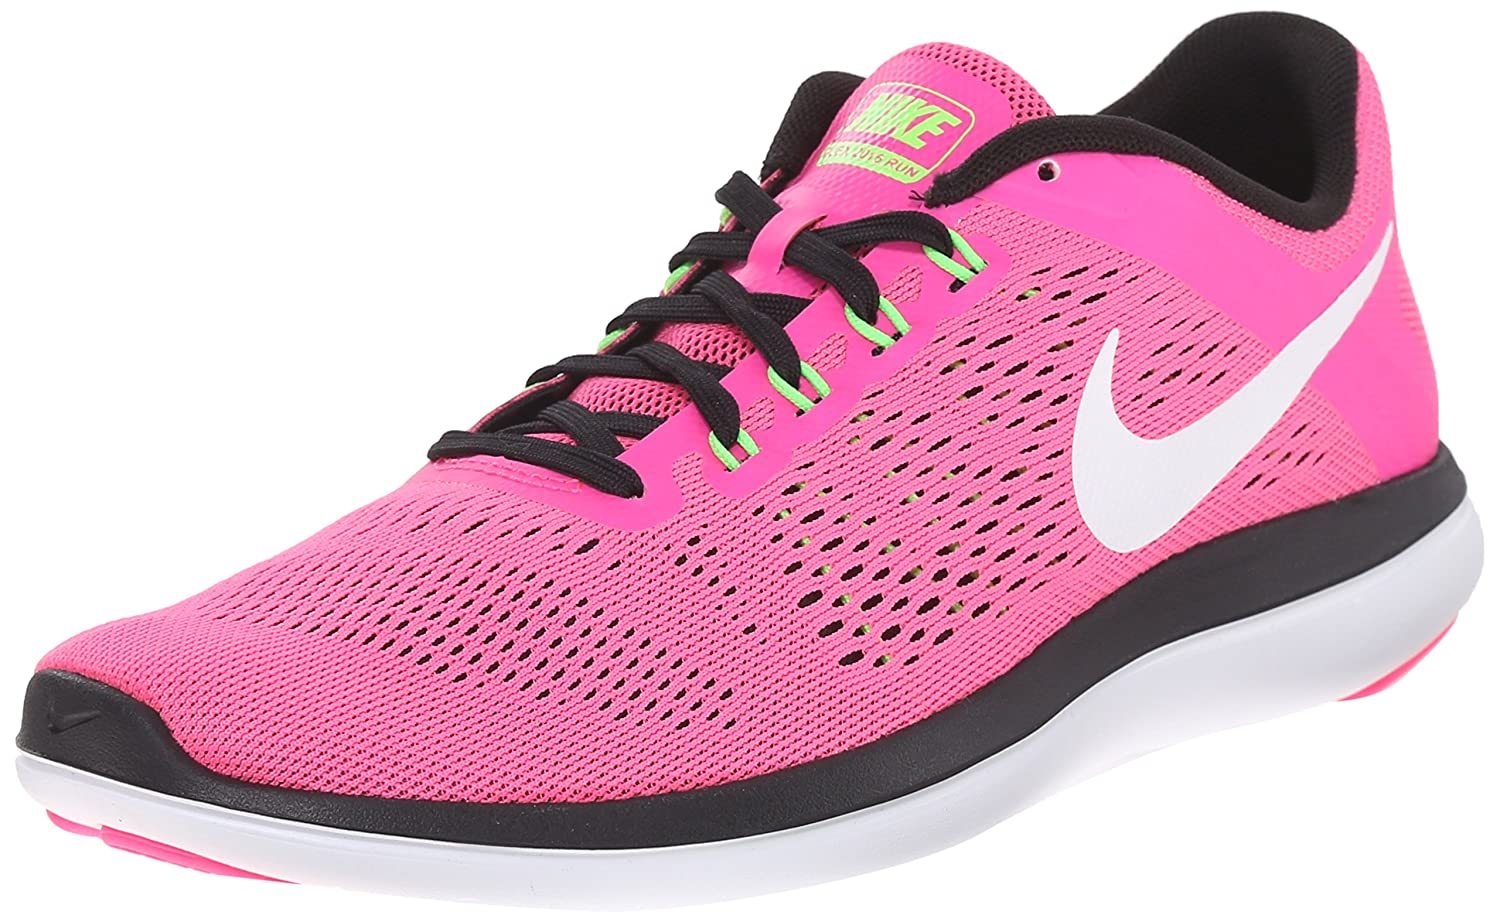 NIKE Women's Flex 2016 Rn Running Shoes B007ST0QUA 12 B(M) US|Pink Blast/White/Black/Electric Green